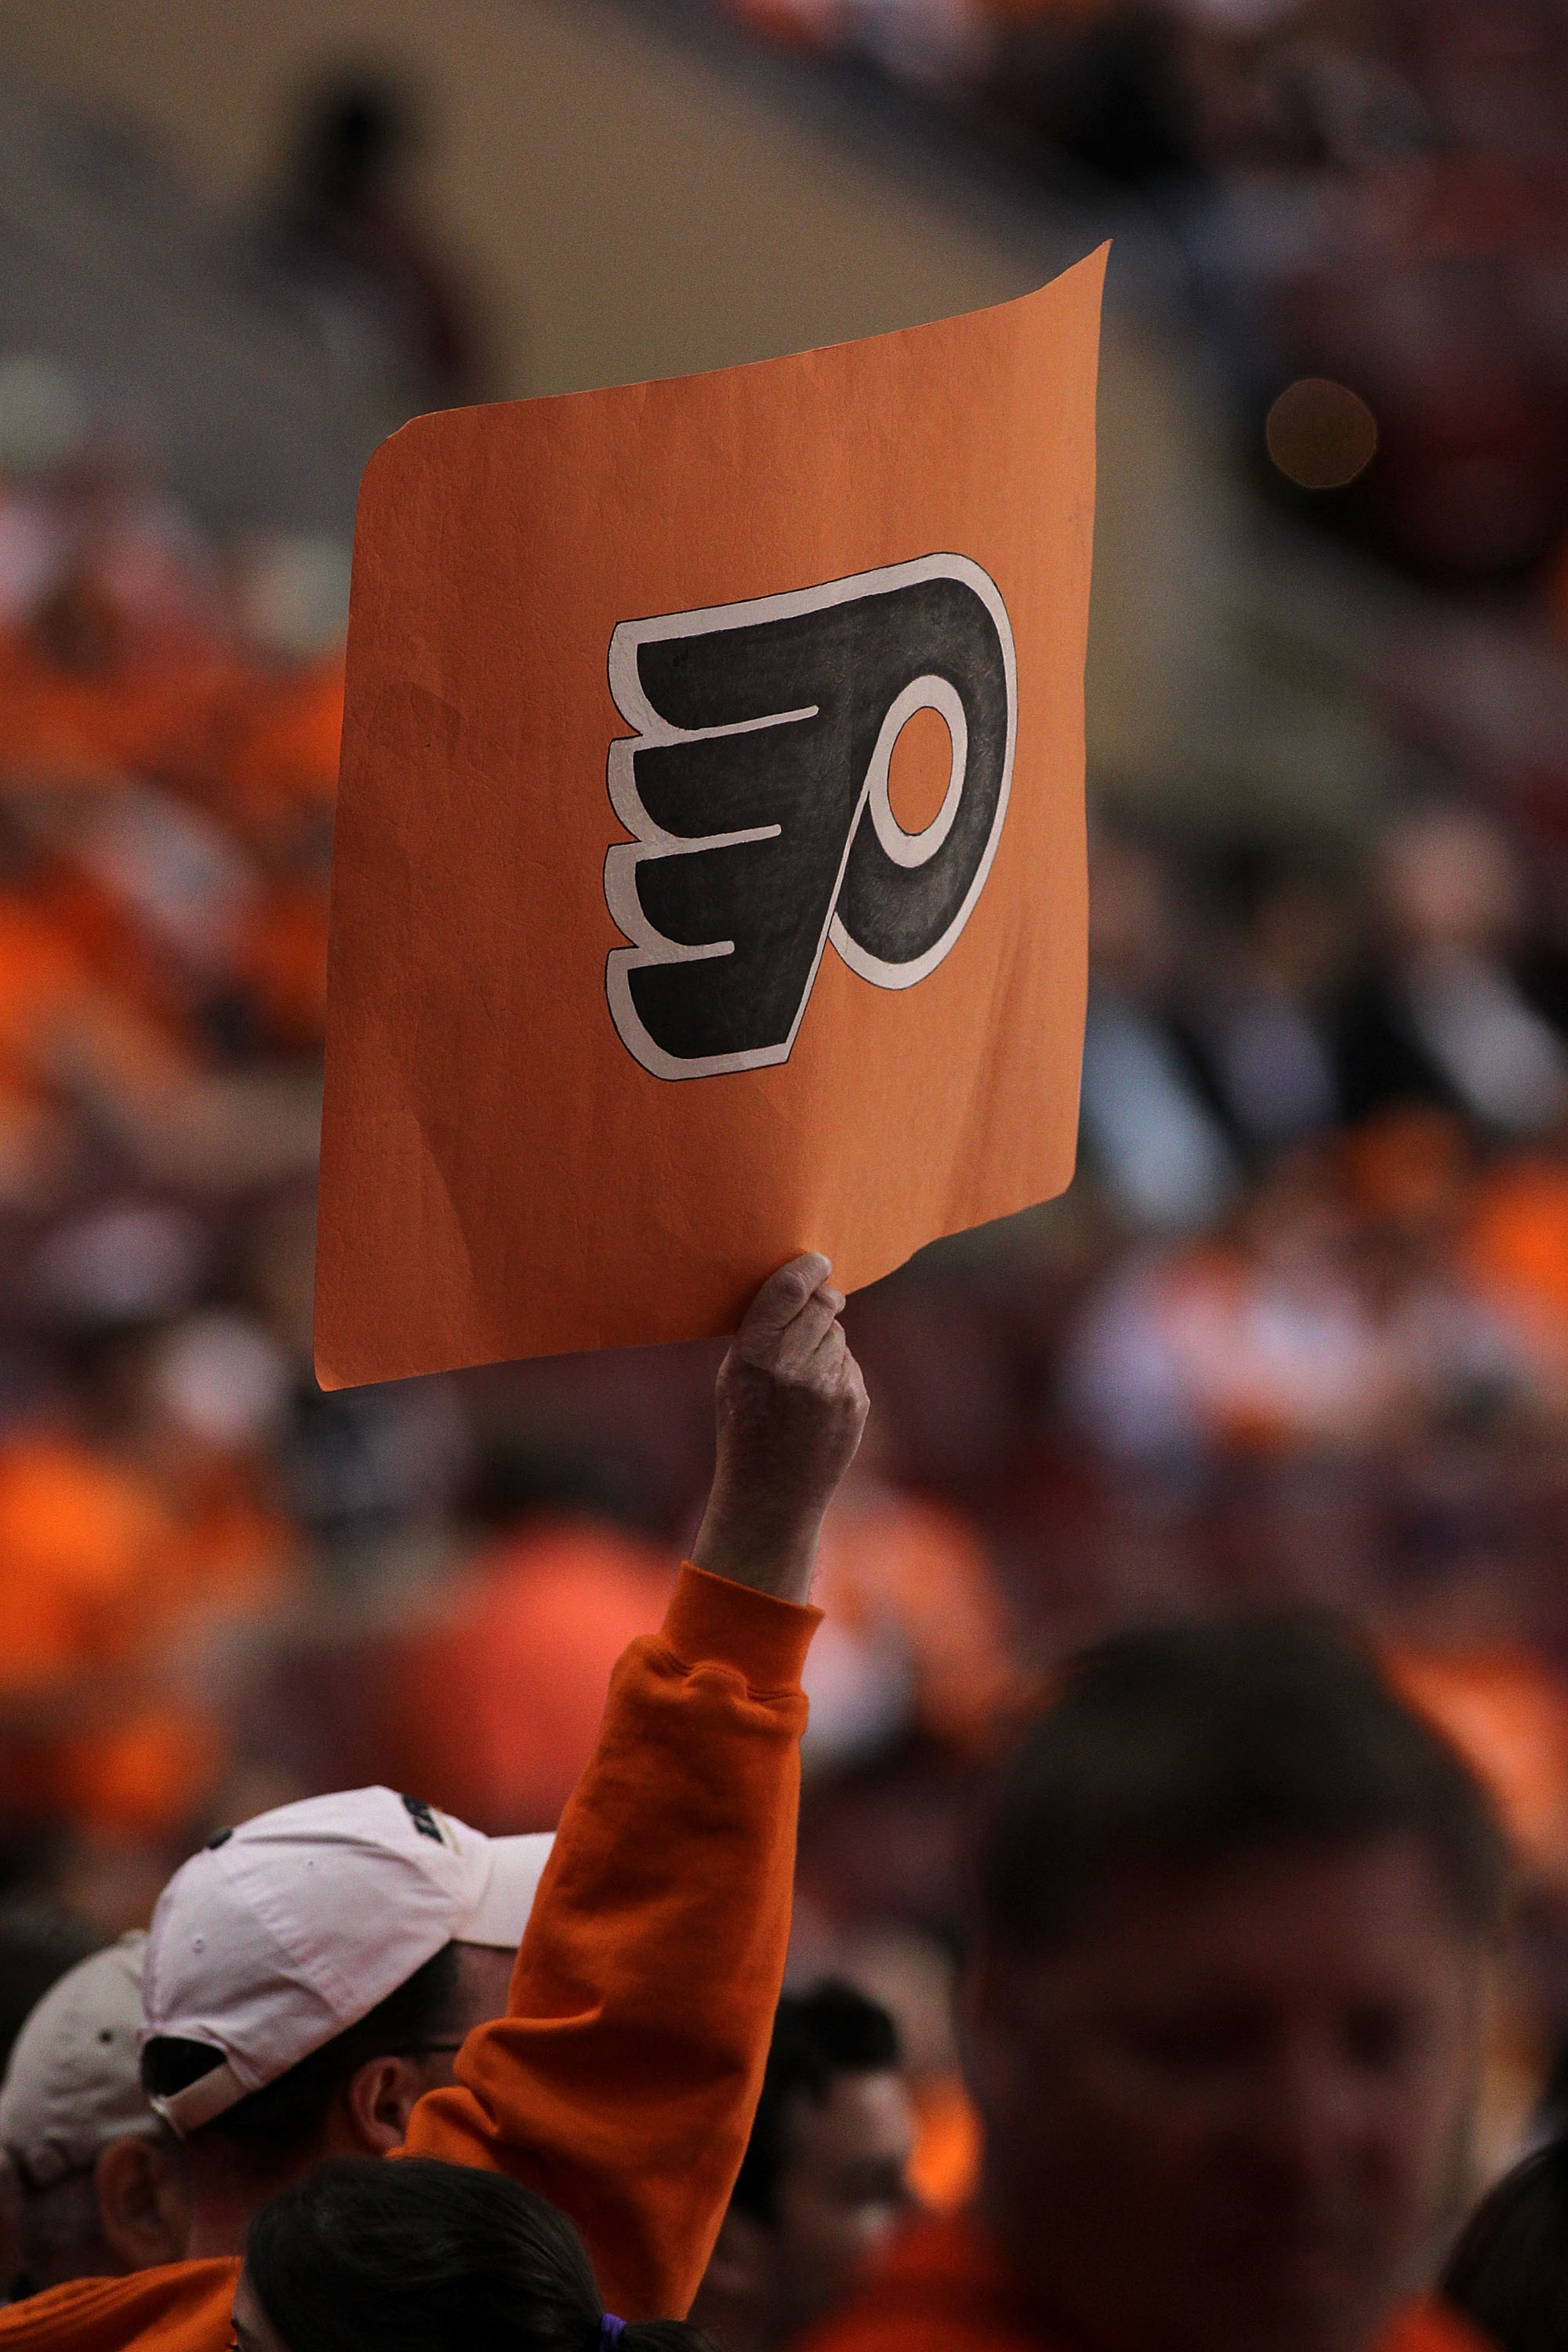 PHILADELPHIA - JUNE 02:  An fan holds up a Flyers logo before Game Three of the 2010 NHL Stanley Cup Final between the Chicago Blackhawks and the Philadelphia Flyers at Wachovia Center on June 2, 2010 in Philadelphia, Pennsylvania.  (Photo by Andre Ringue